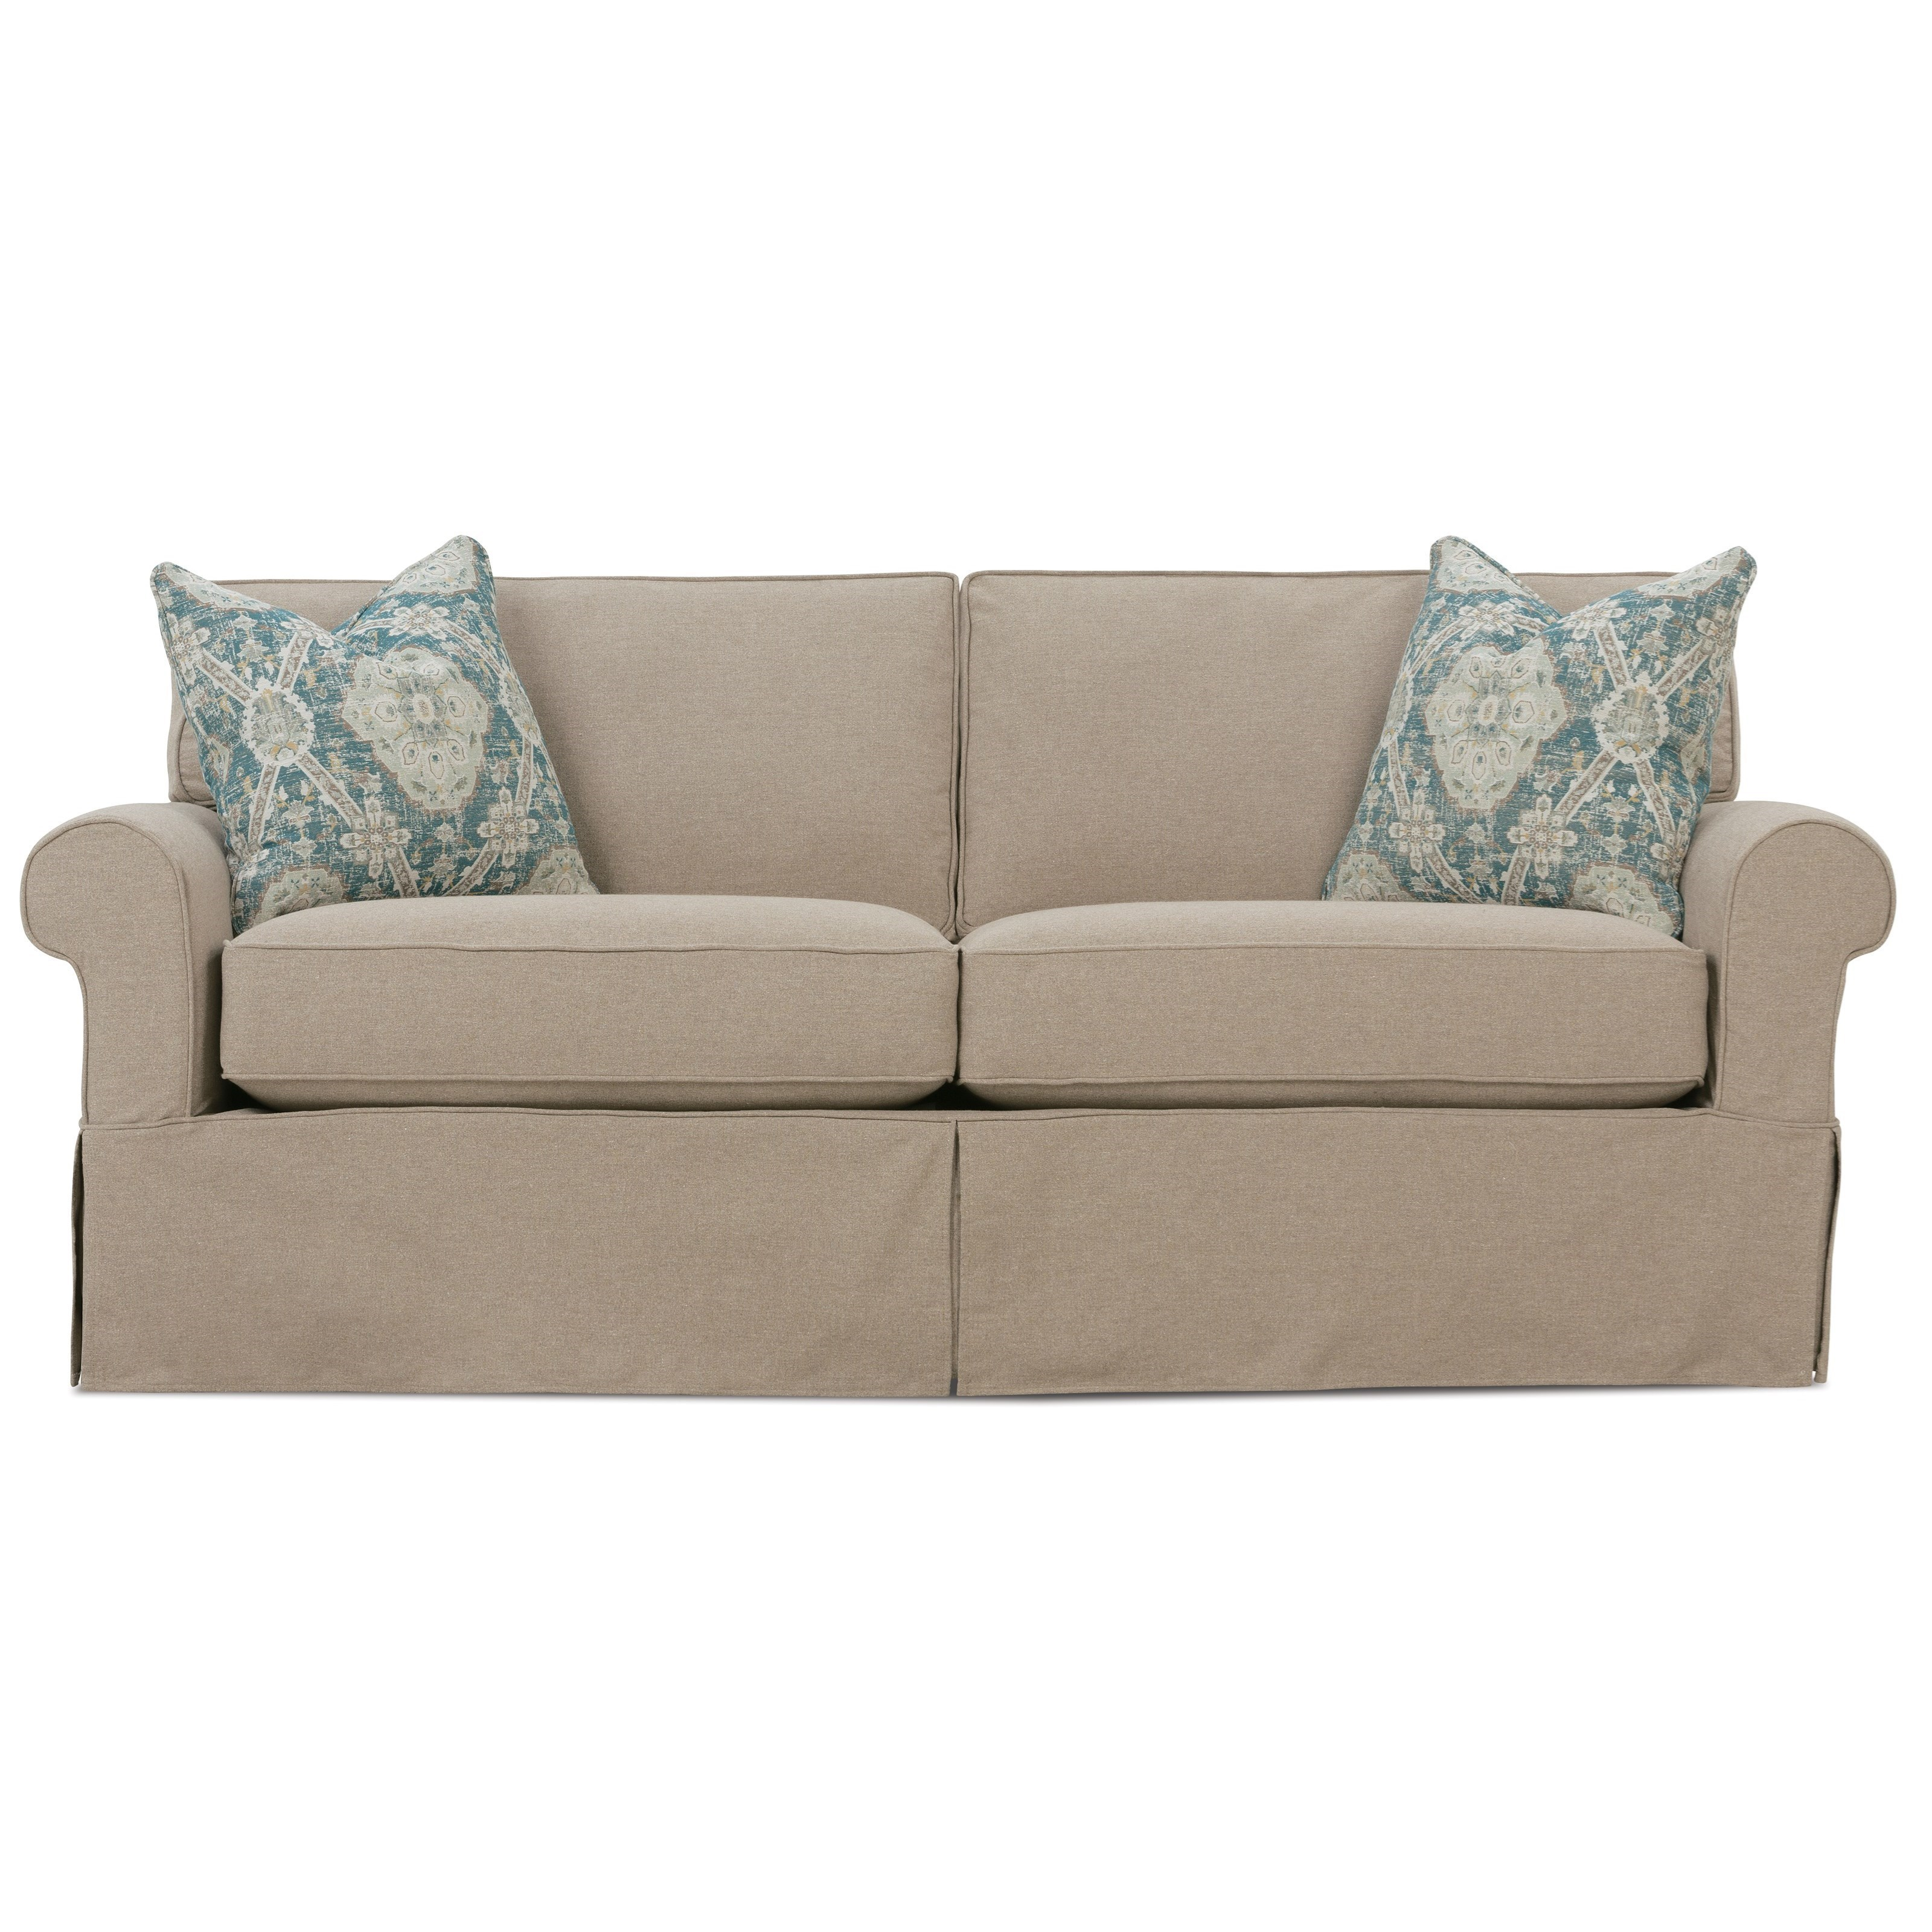 Rowe Nantucket 84quot Two Cushion Slipcover Sofa Belfort  : products2Frowe2Fcolor2Fnantucket20a910a910r 000 b3jpgscalebothampwidth500ampheight500ampfsharpen25ampdown from www.belfortfurniture.com size 500 x 500 jpeg 25kB